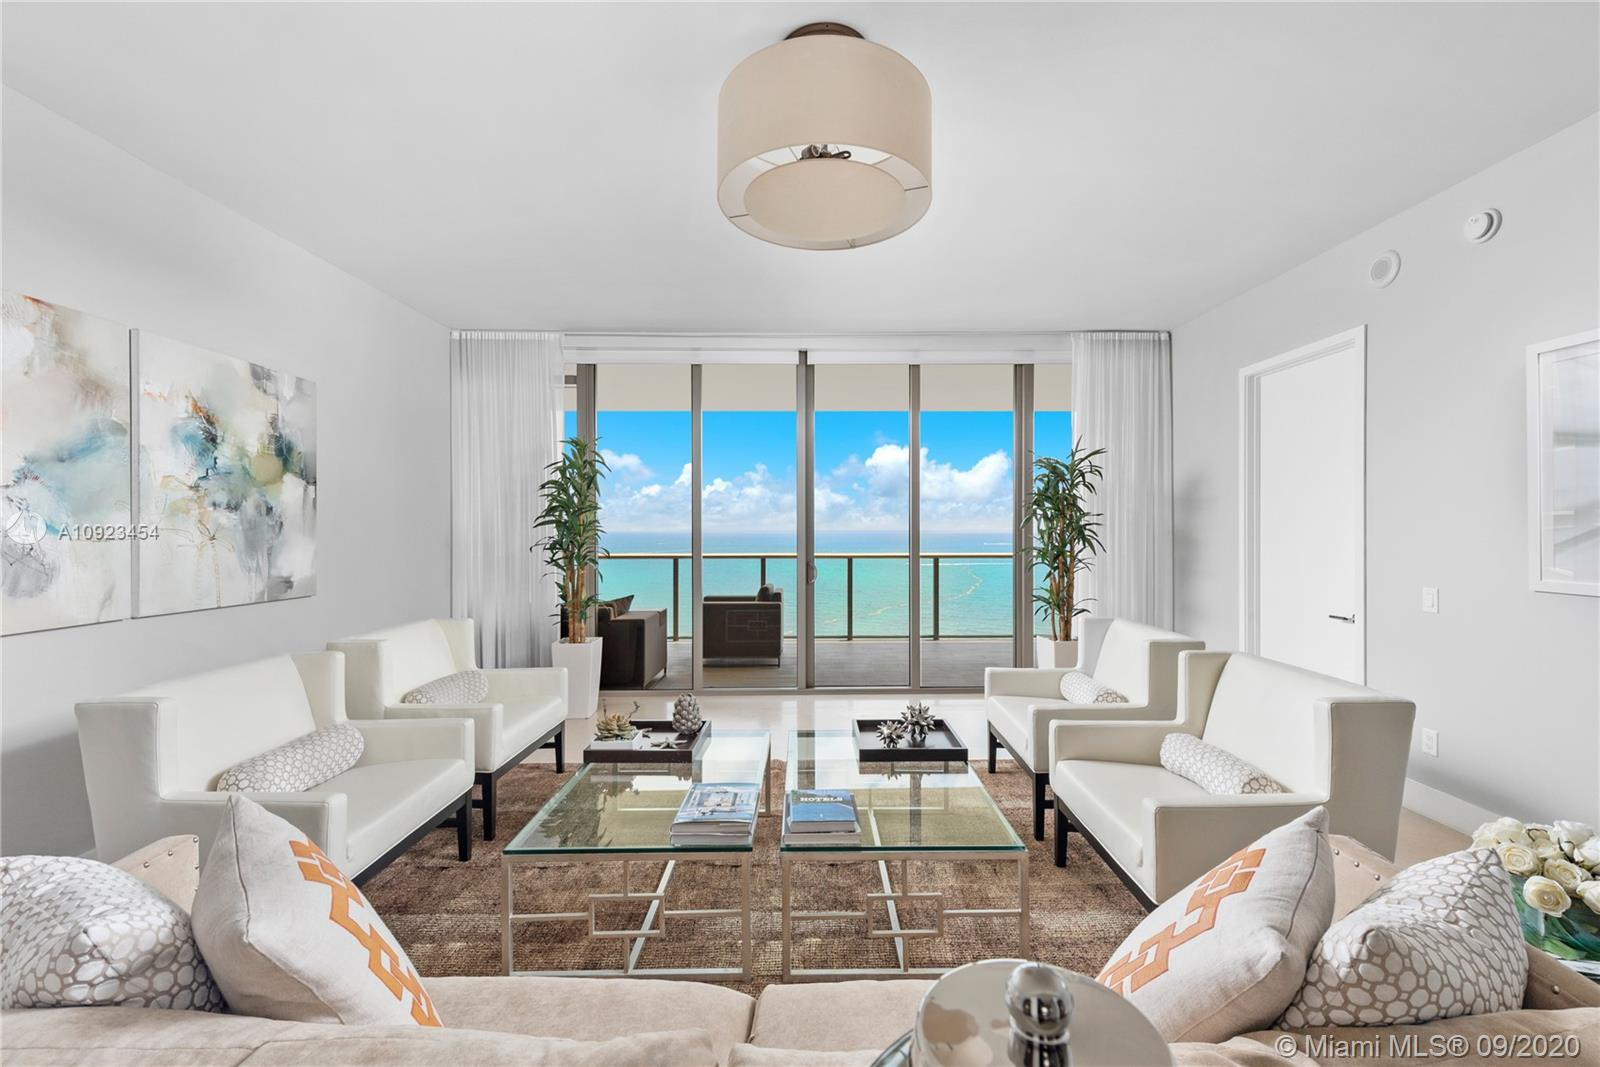 9701 Collins Ave, Unit #1902S Luxury Real Estate